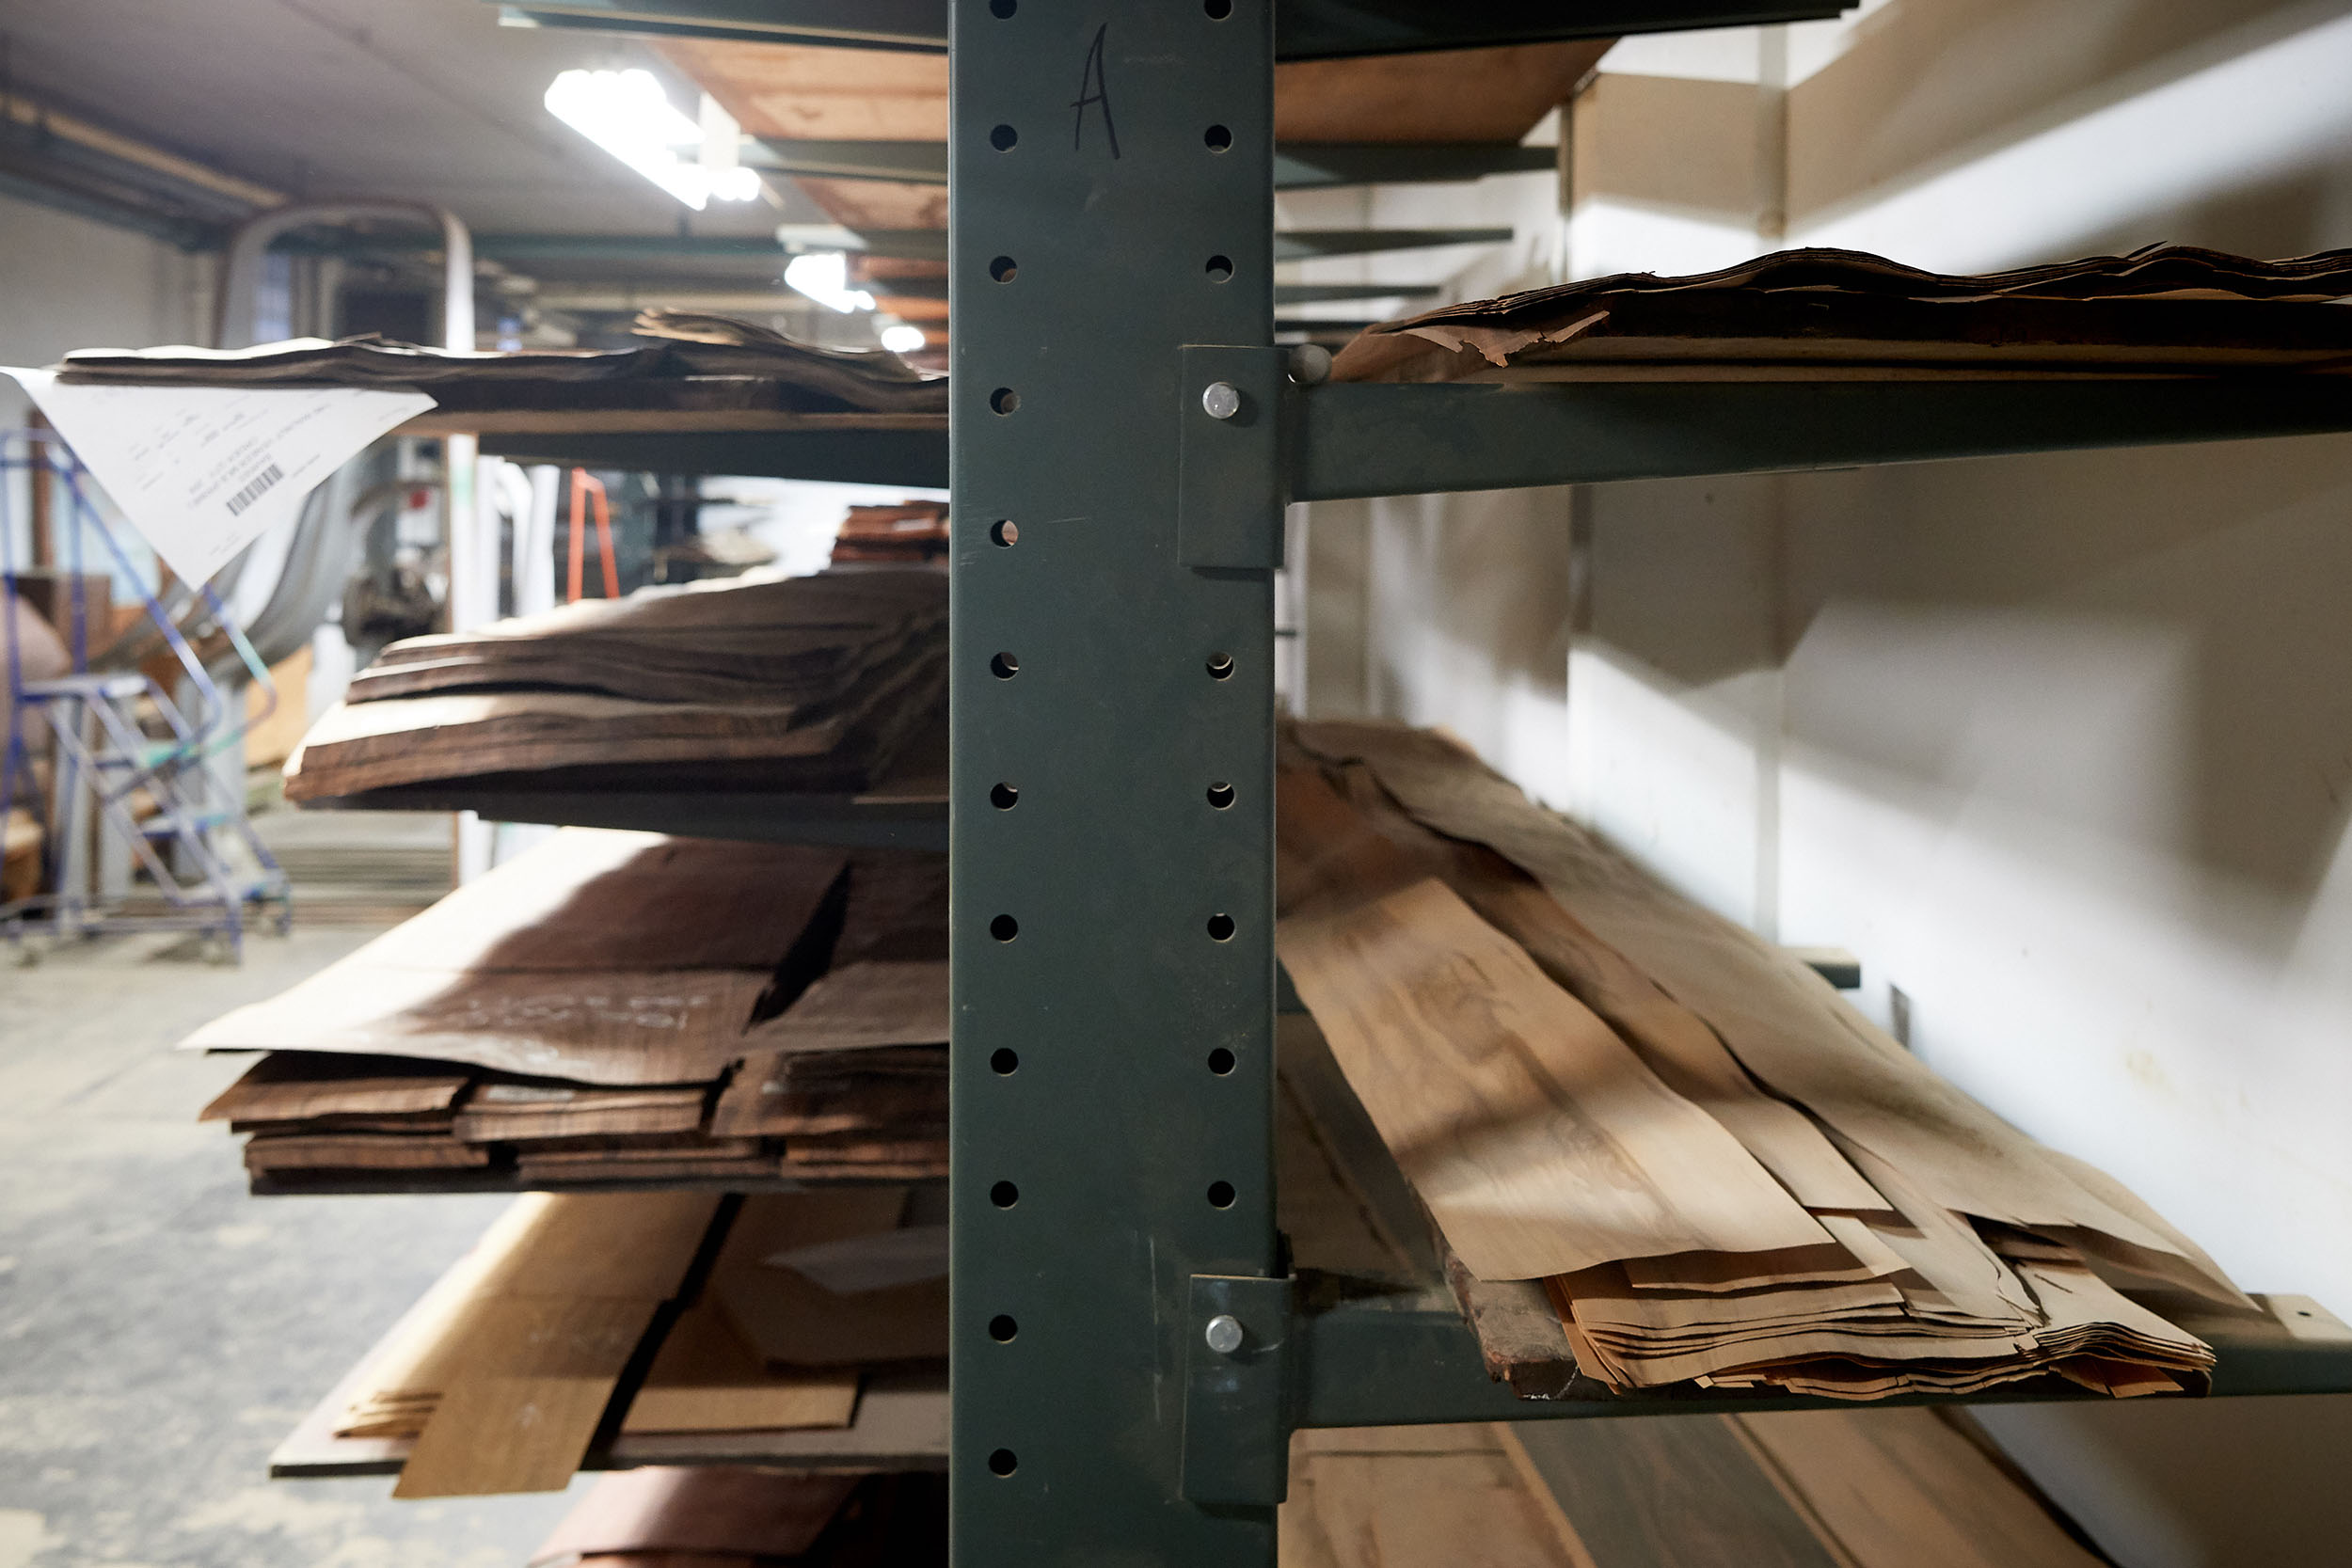 Stacks of fine wood laminate on a rack at the Steinway & Sons factory